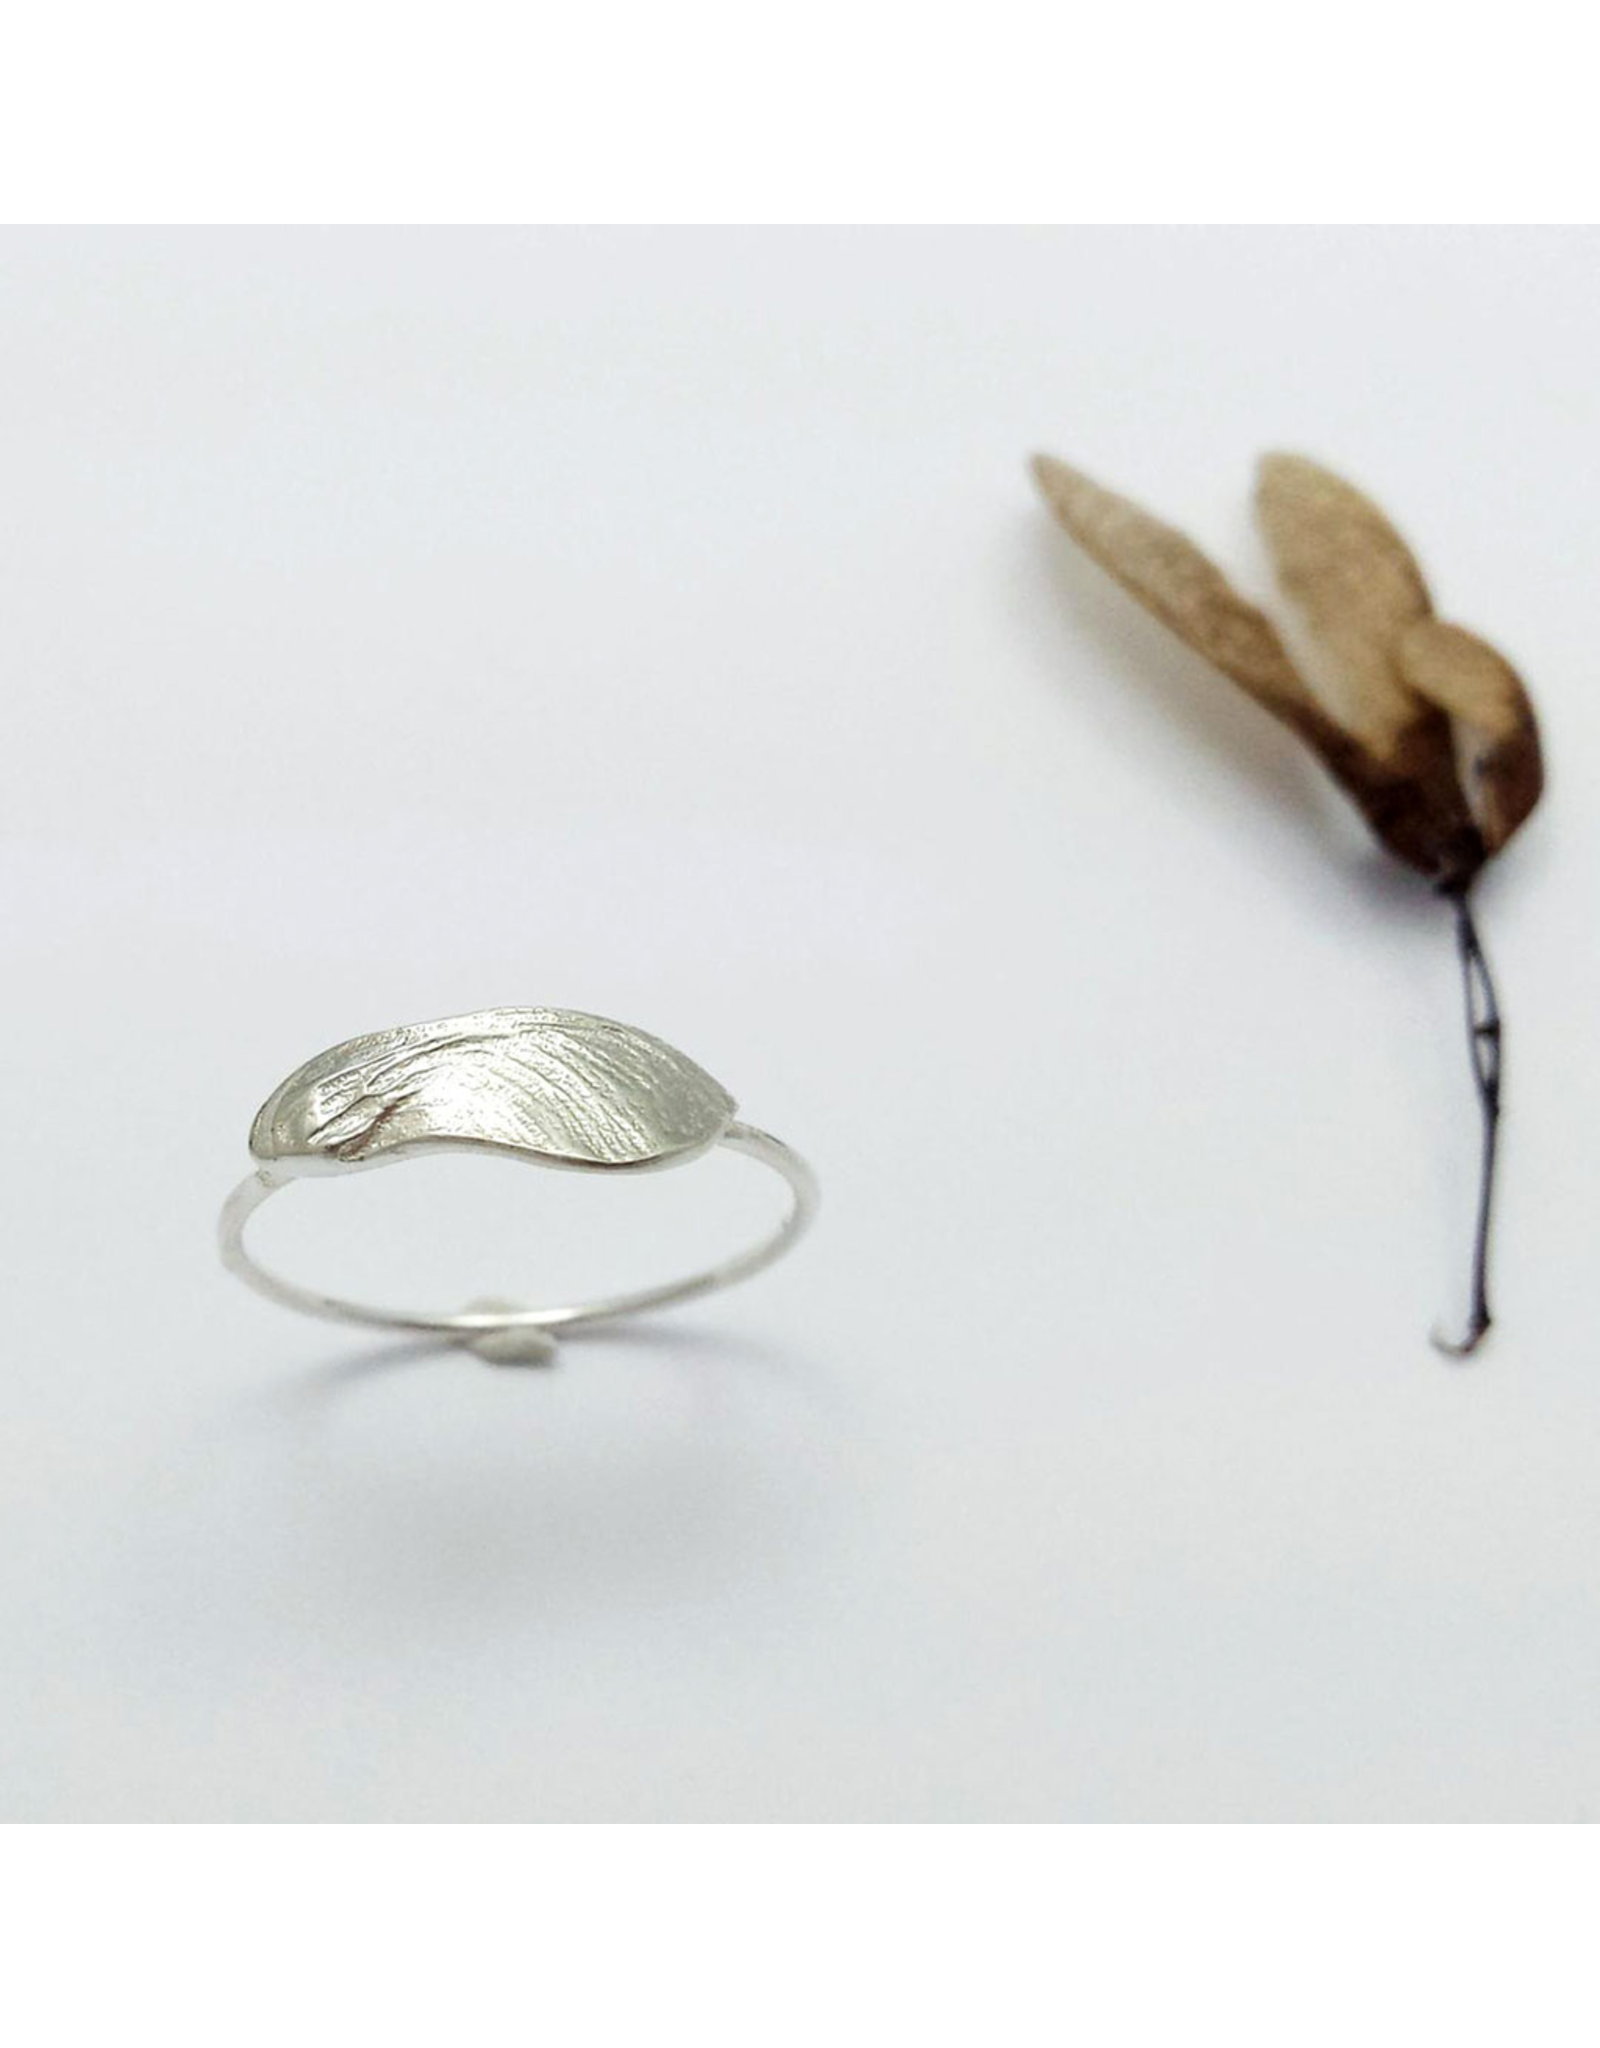 Cast Maple Key Ring - Sterling Silver